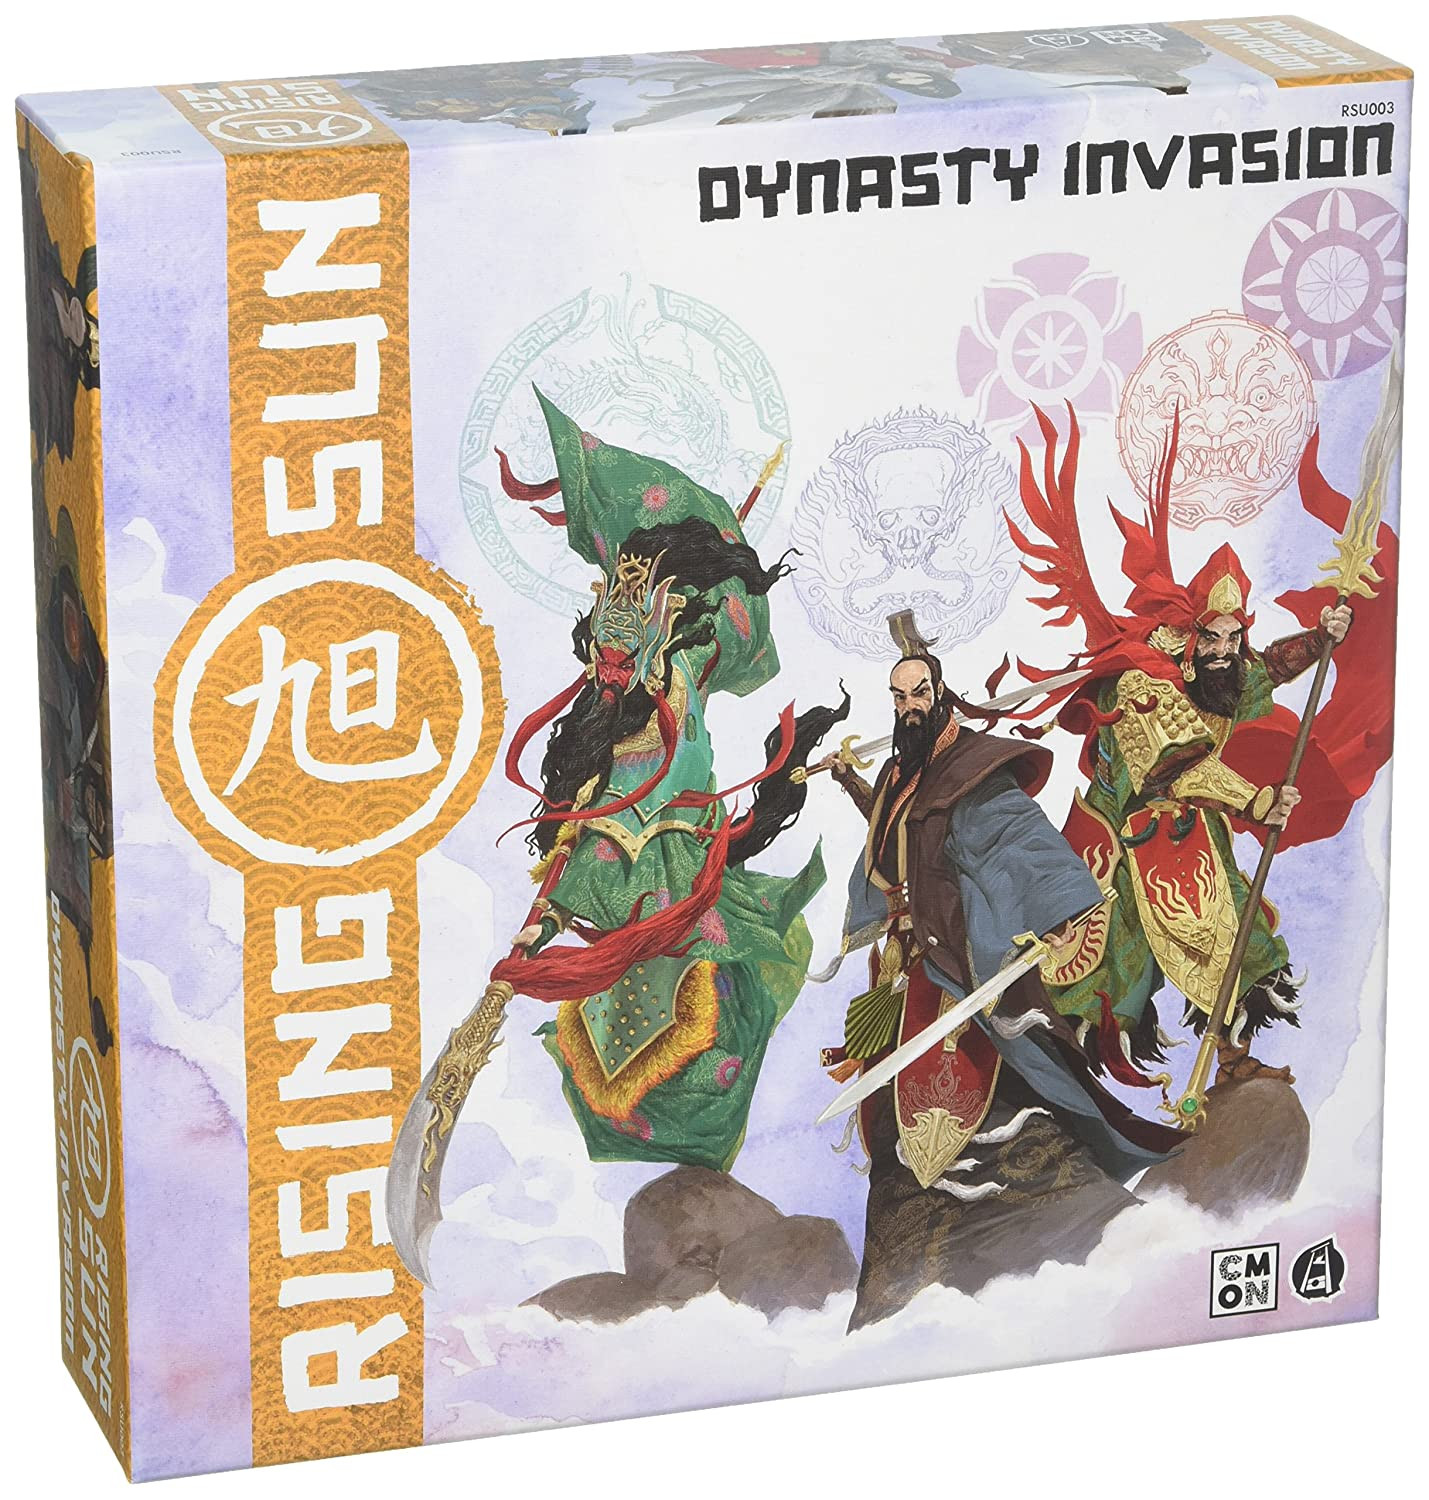 Rising Sun Dynasty Invasion Expansion Cool Mini or Not RSU003